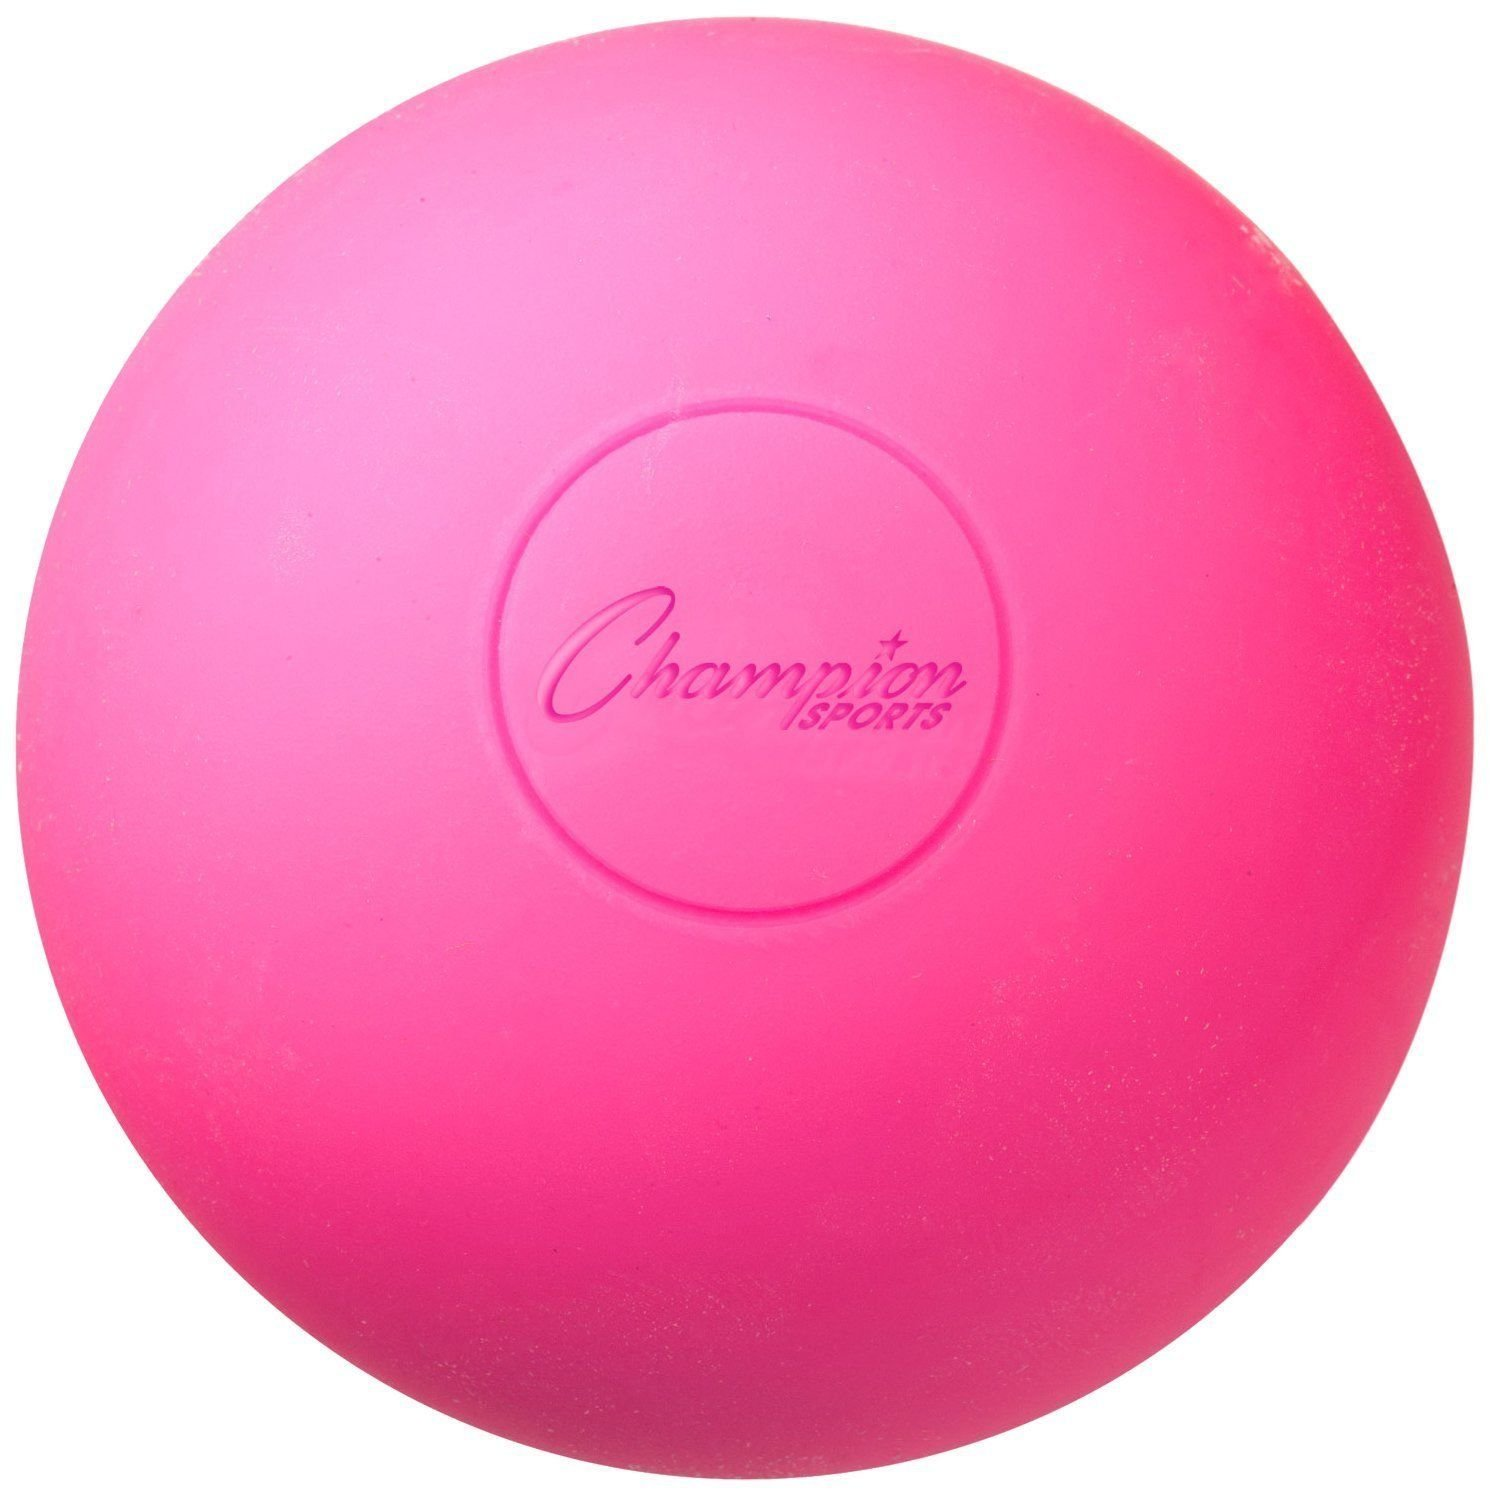 Lacrosse Balls - NCAA NFHS Certified - Pink, You will receive (1) pink lacrosse ball By Champion Sports